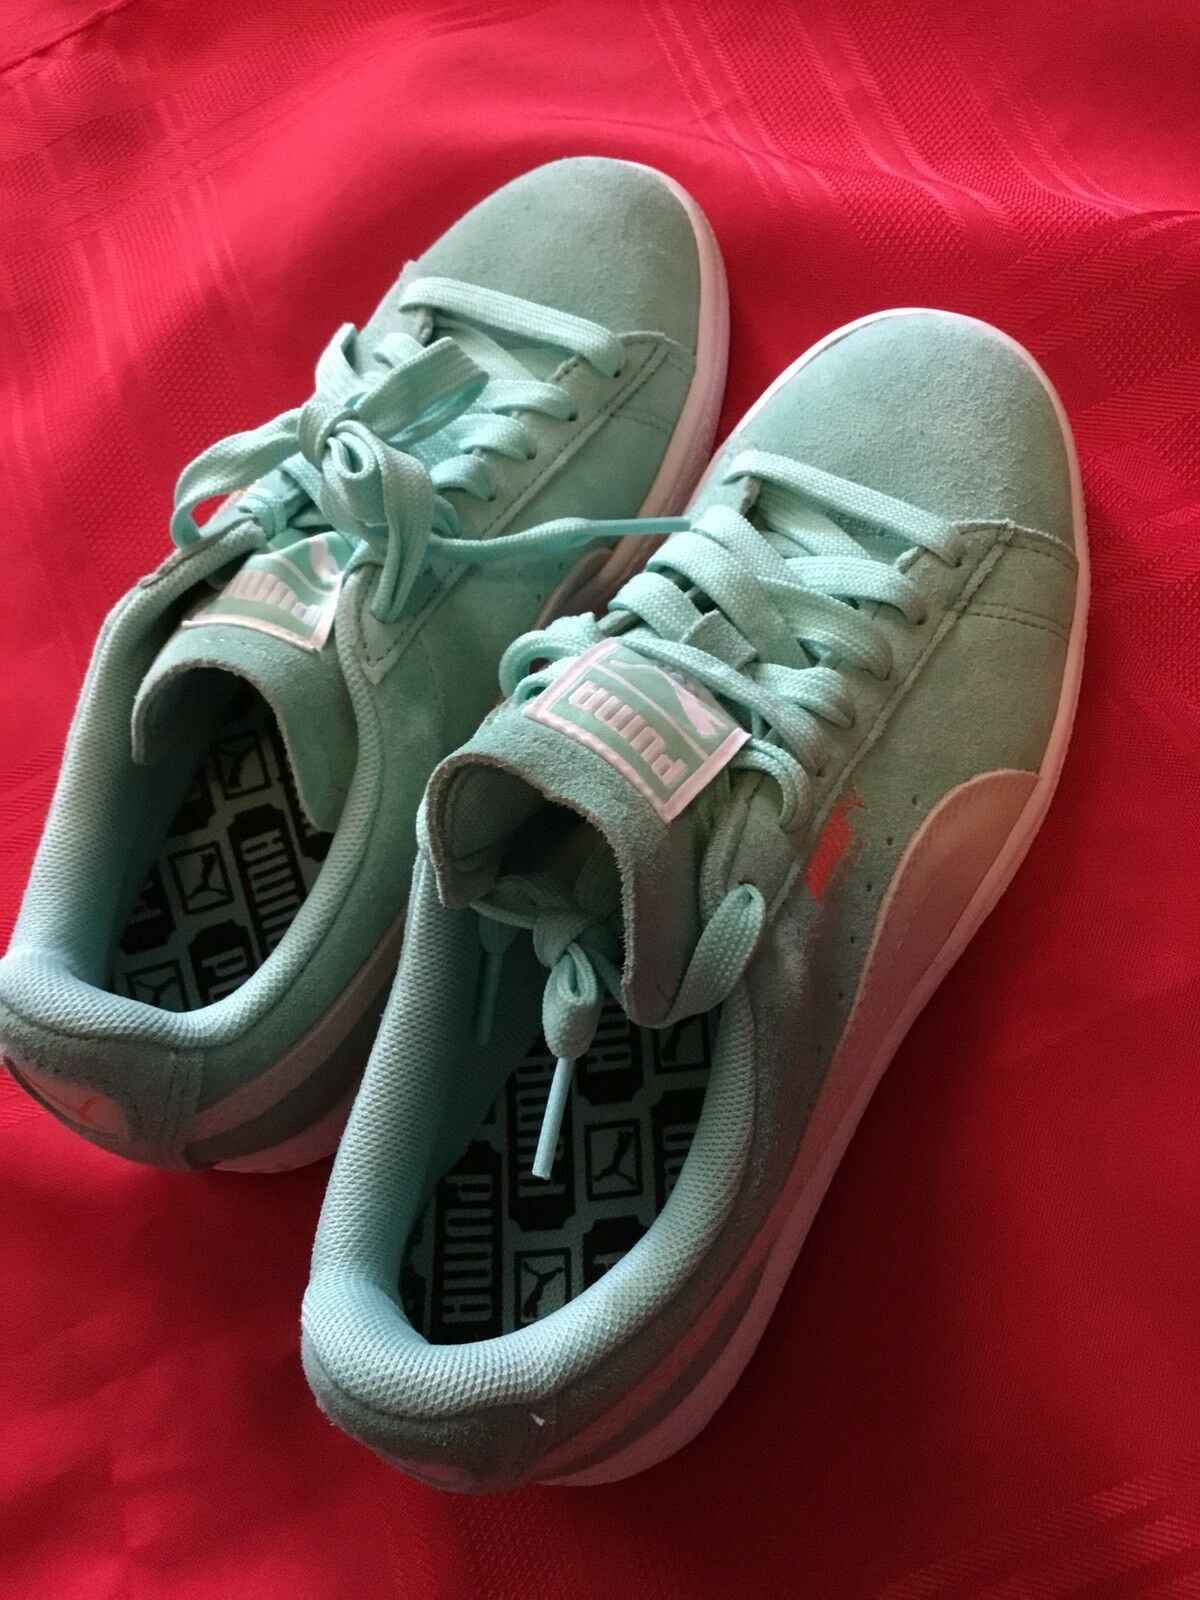 NWOT Puma Classic Suede Sneakers Mint Green Size 6.5